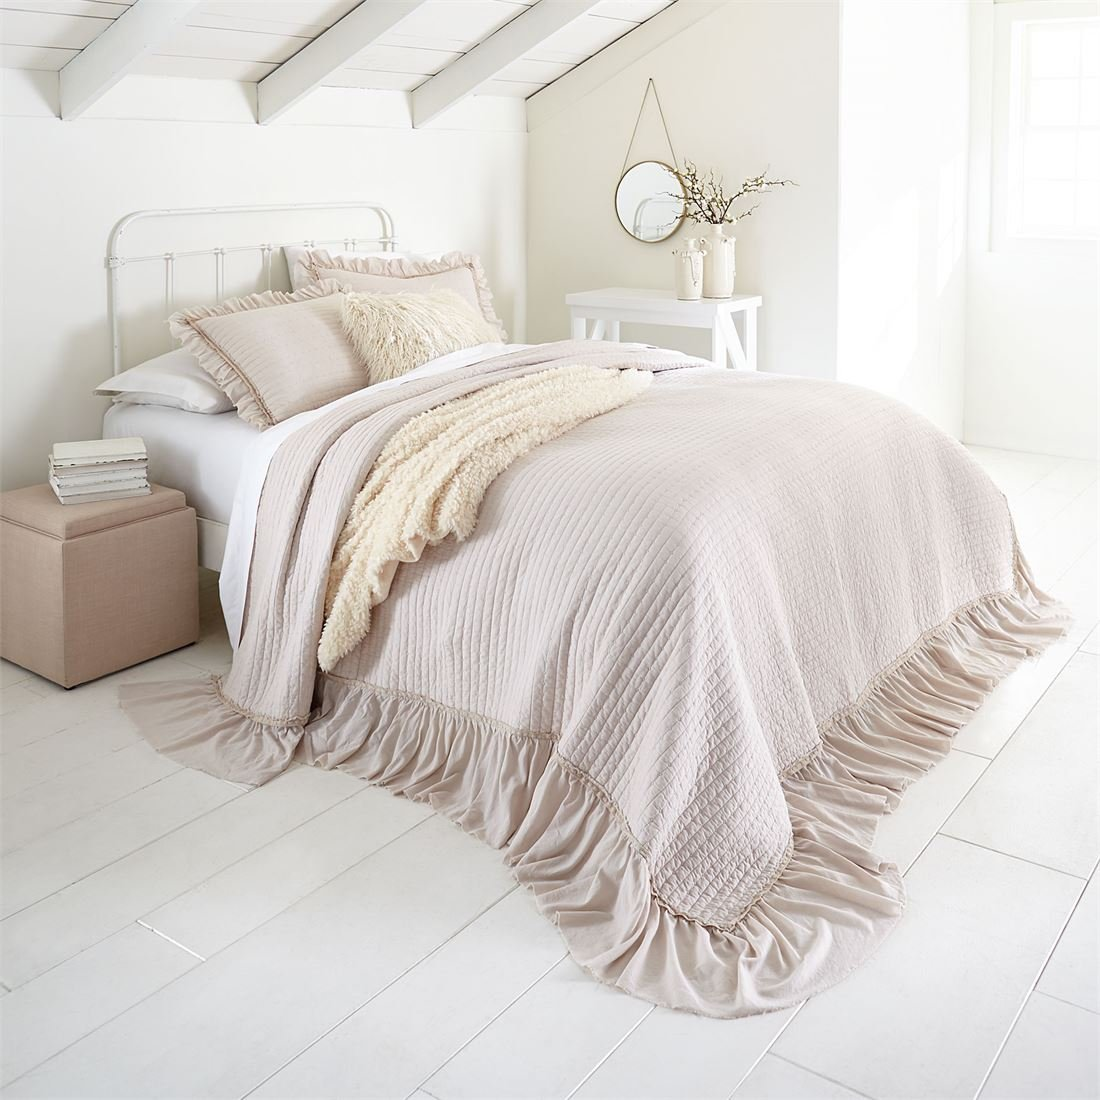 Brylanehome Madeline Ruffle Bedspread (Soft Taupe,King) by BrylaneHome